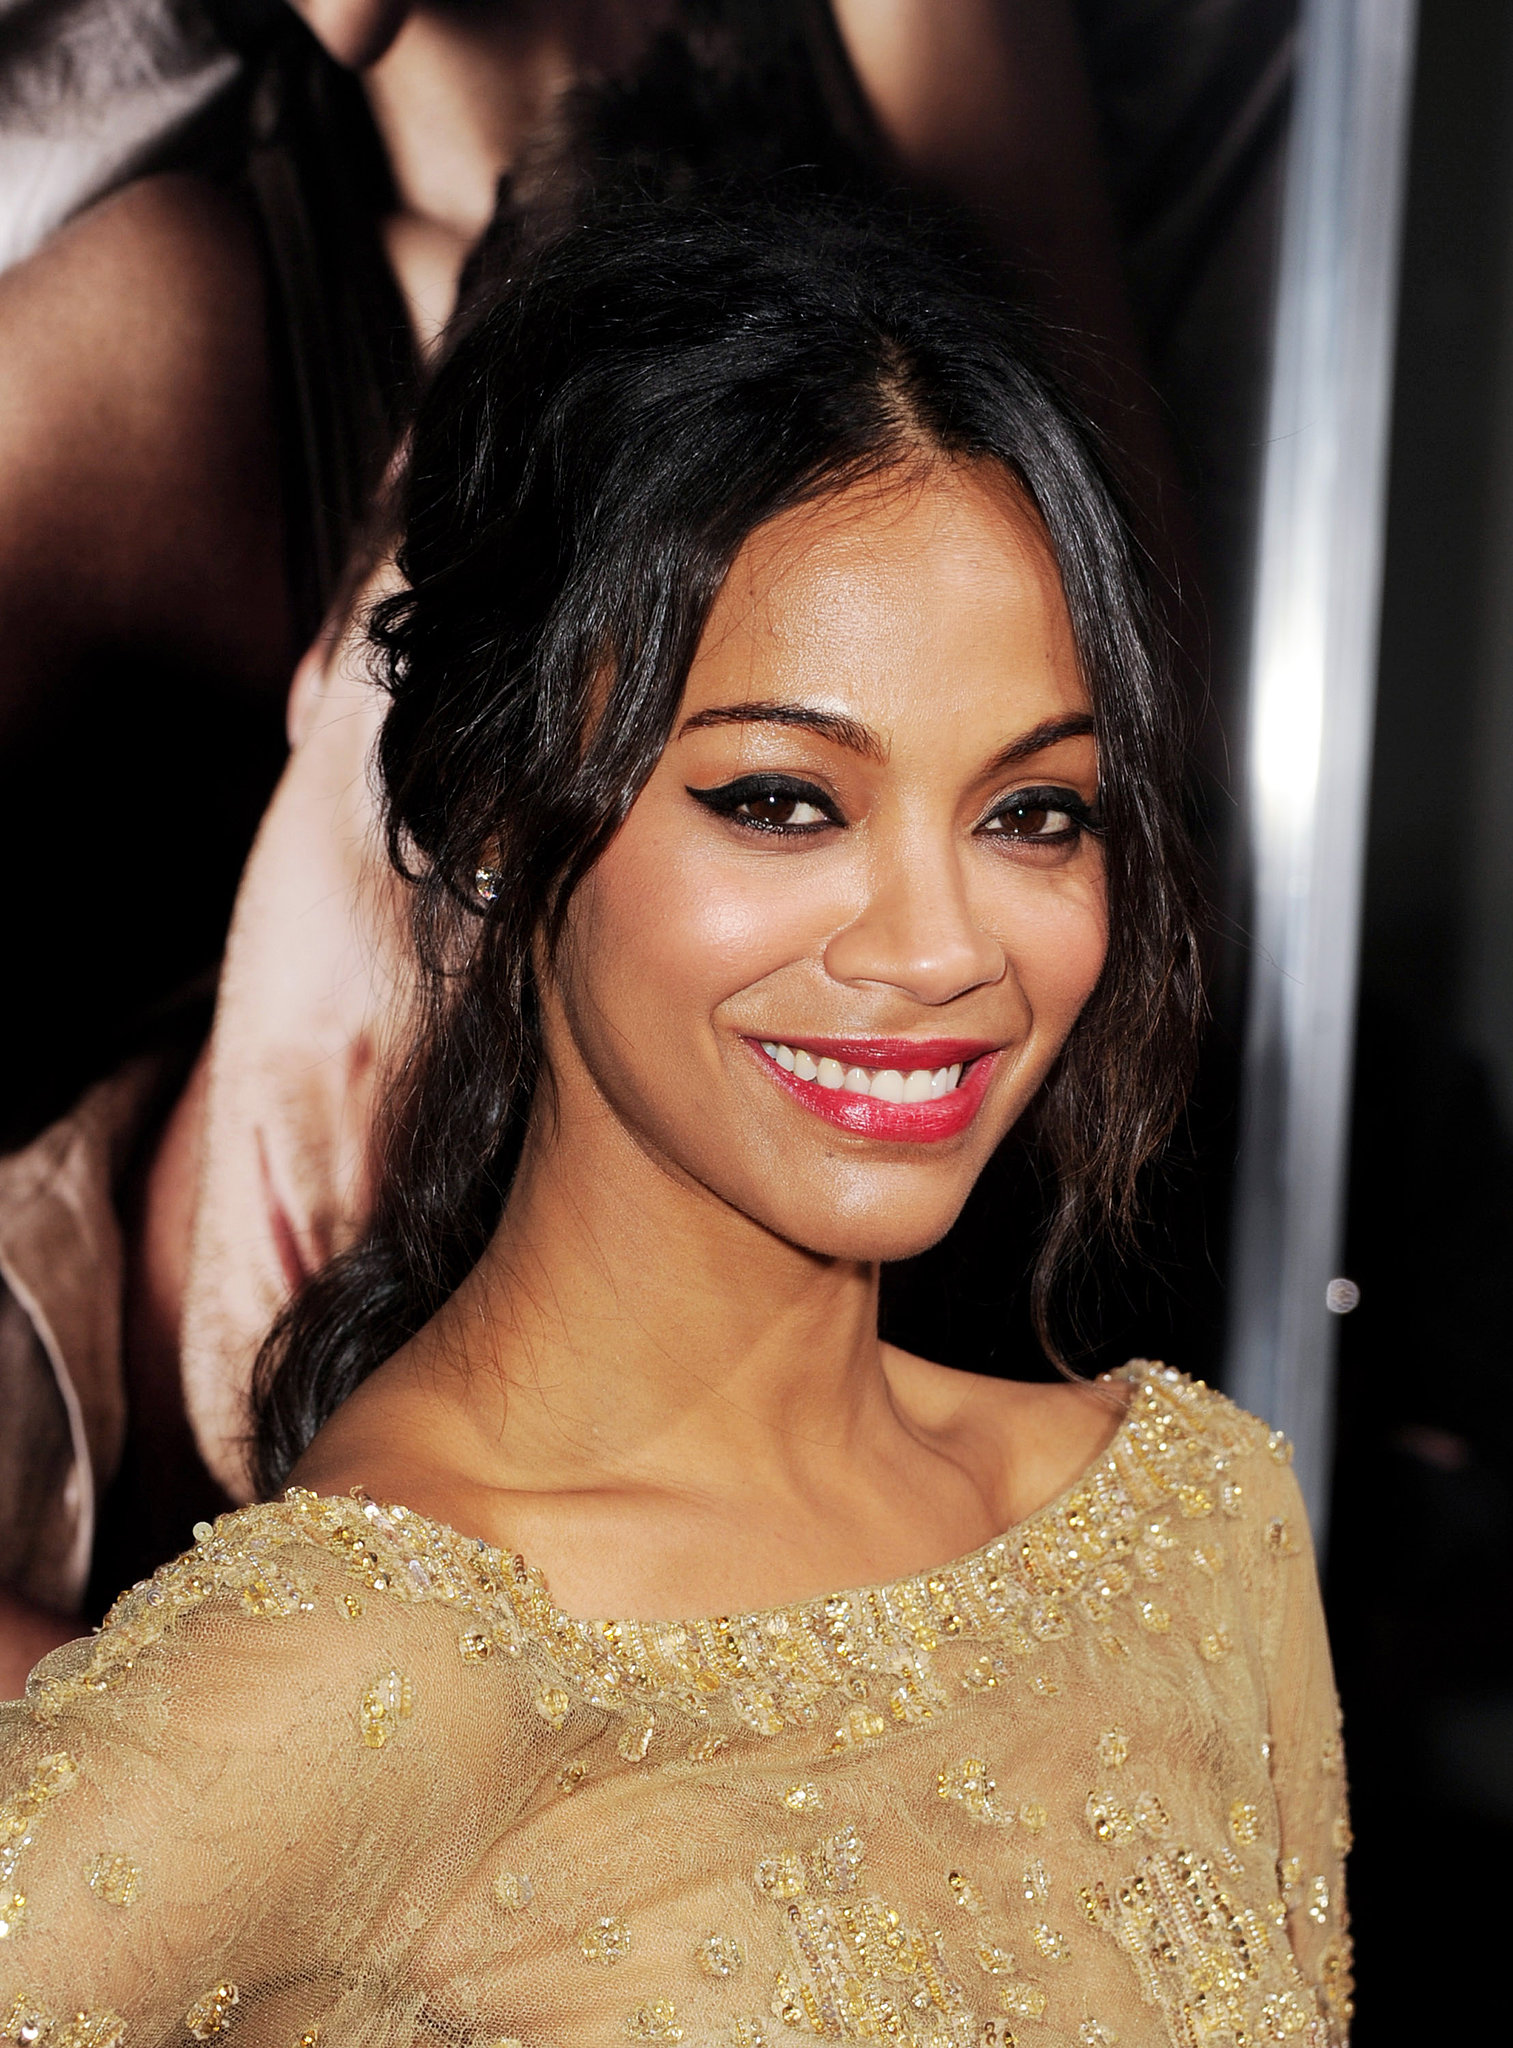 For the premiere of The Words in 2012, Zoe amped up her signature cat eye and paired it with glossy red lips.